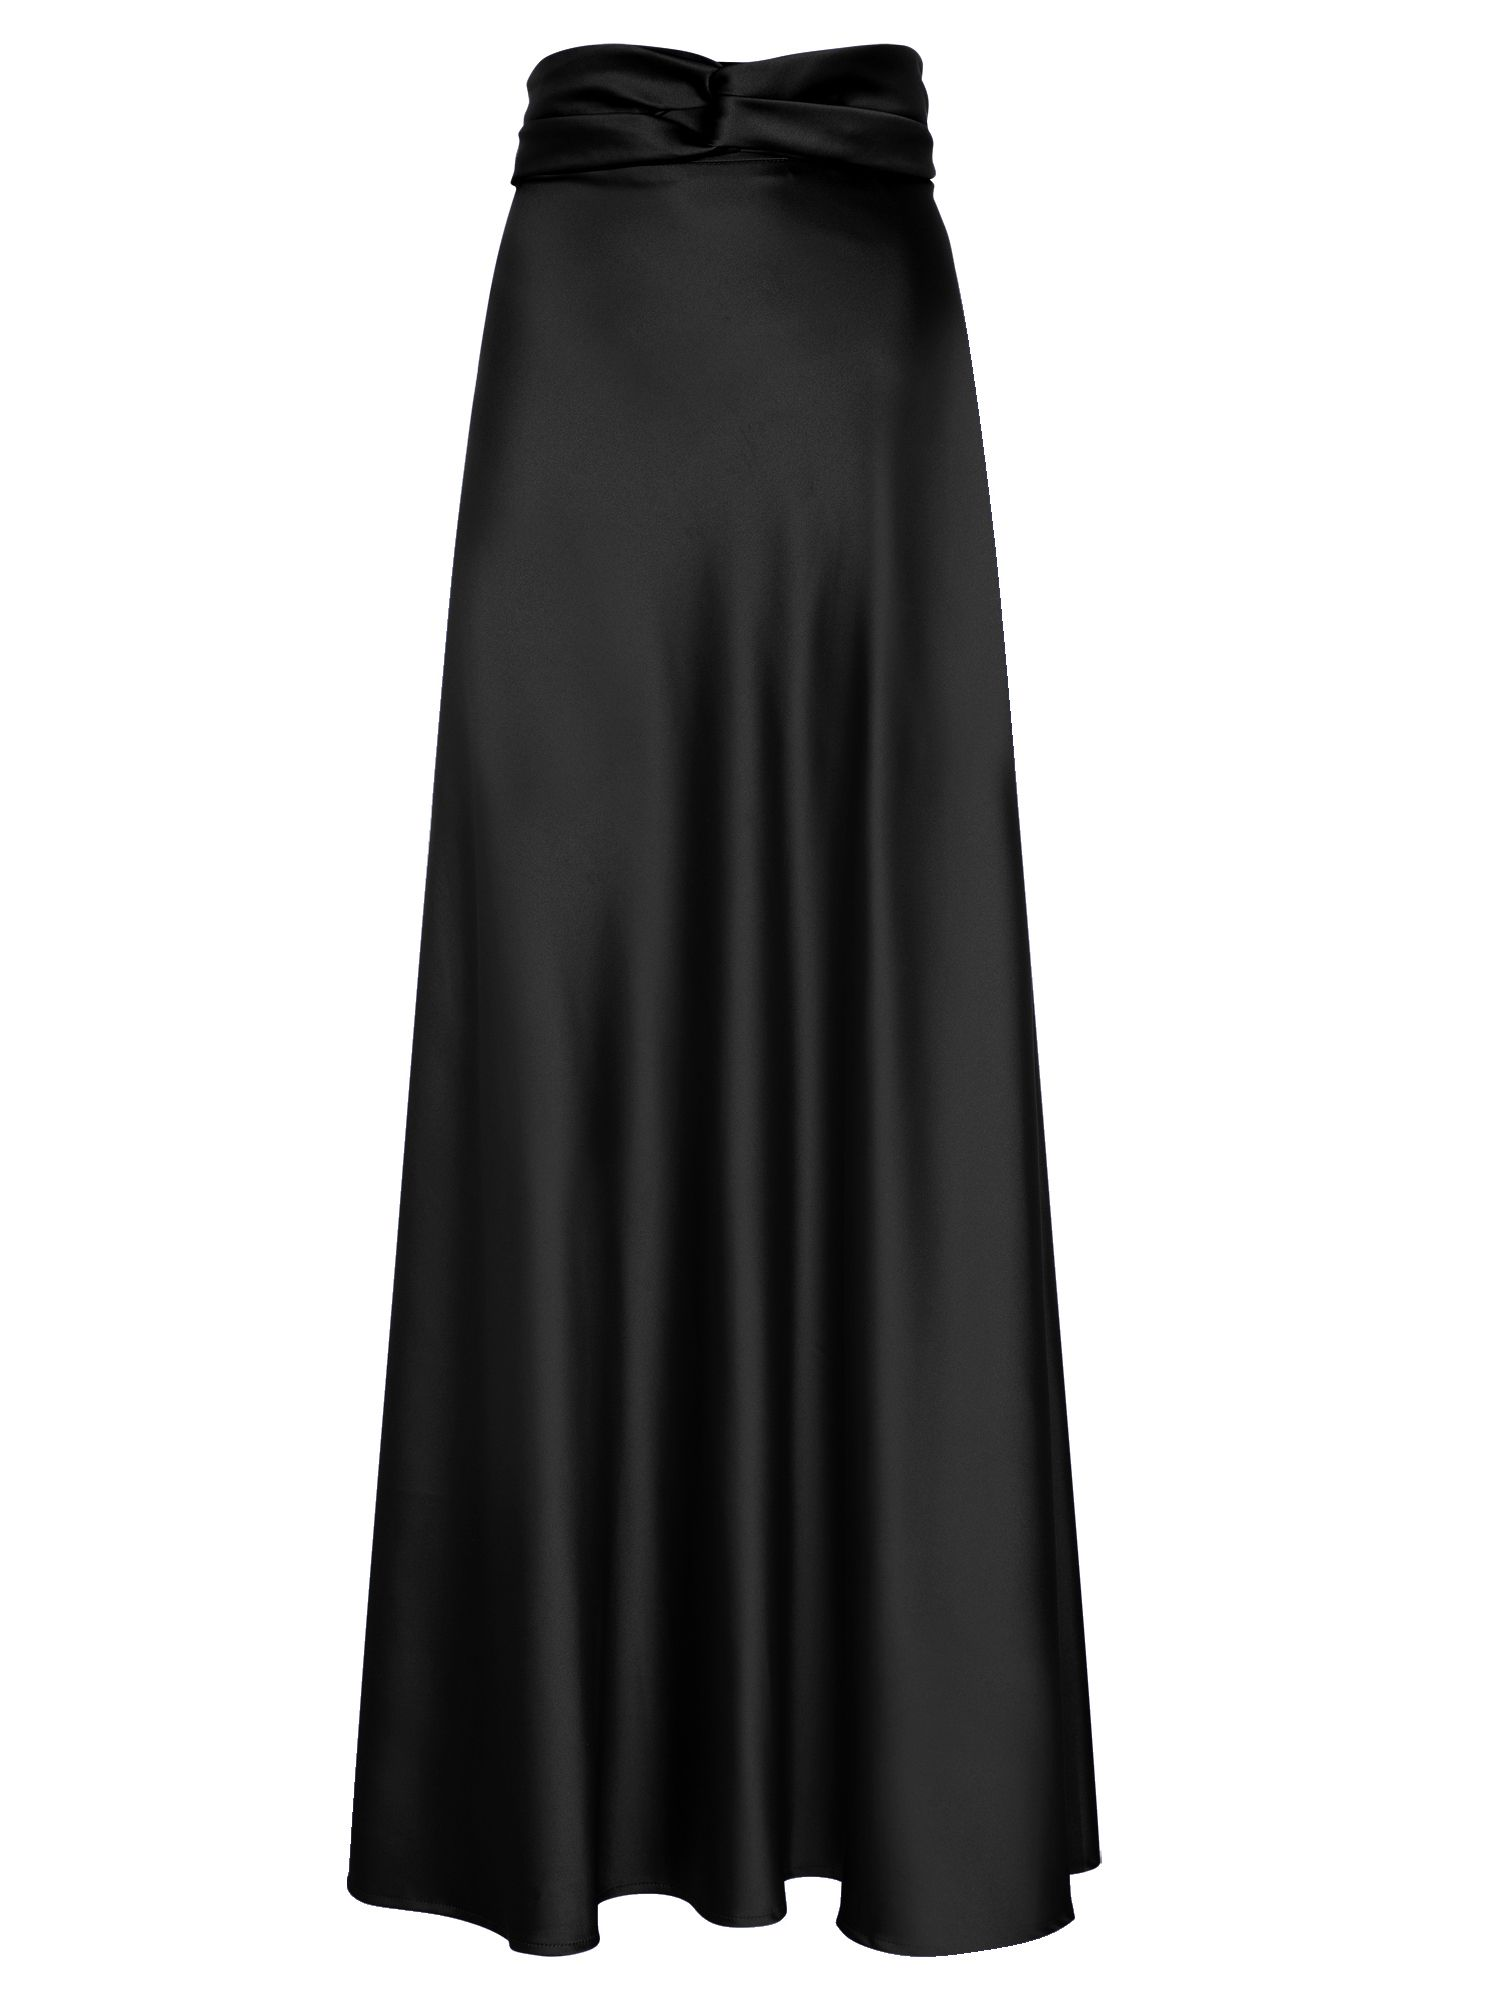 HotSquash Silky maxi skirt, Black